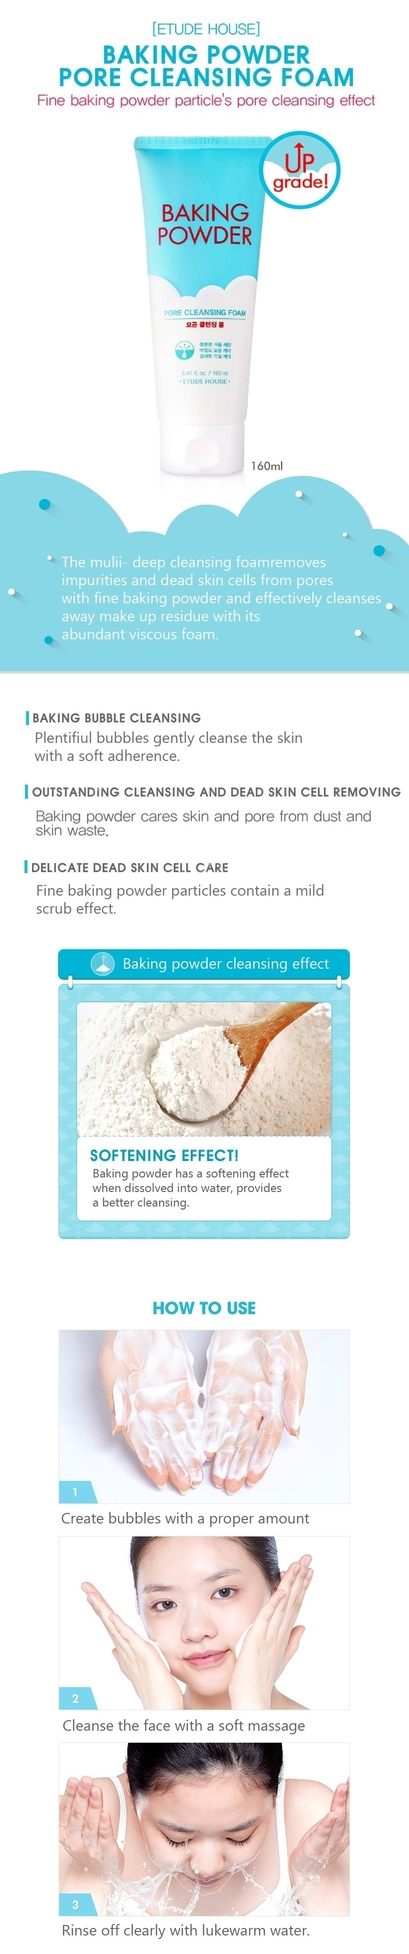 Etude House Baking Powder Pore Cleansing Foam - www.gembira.com.my